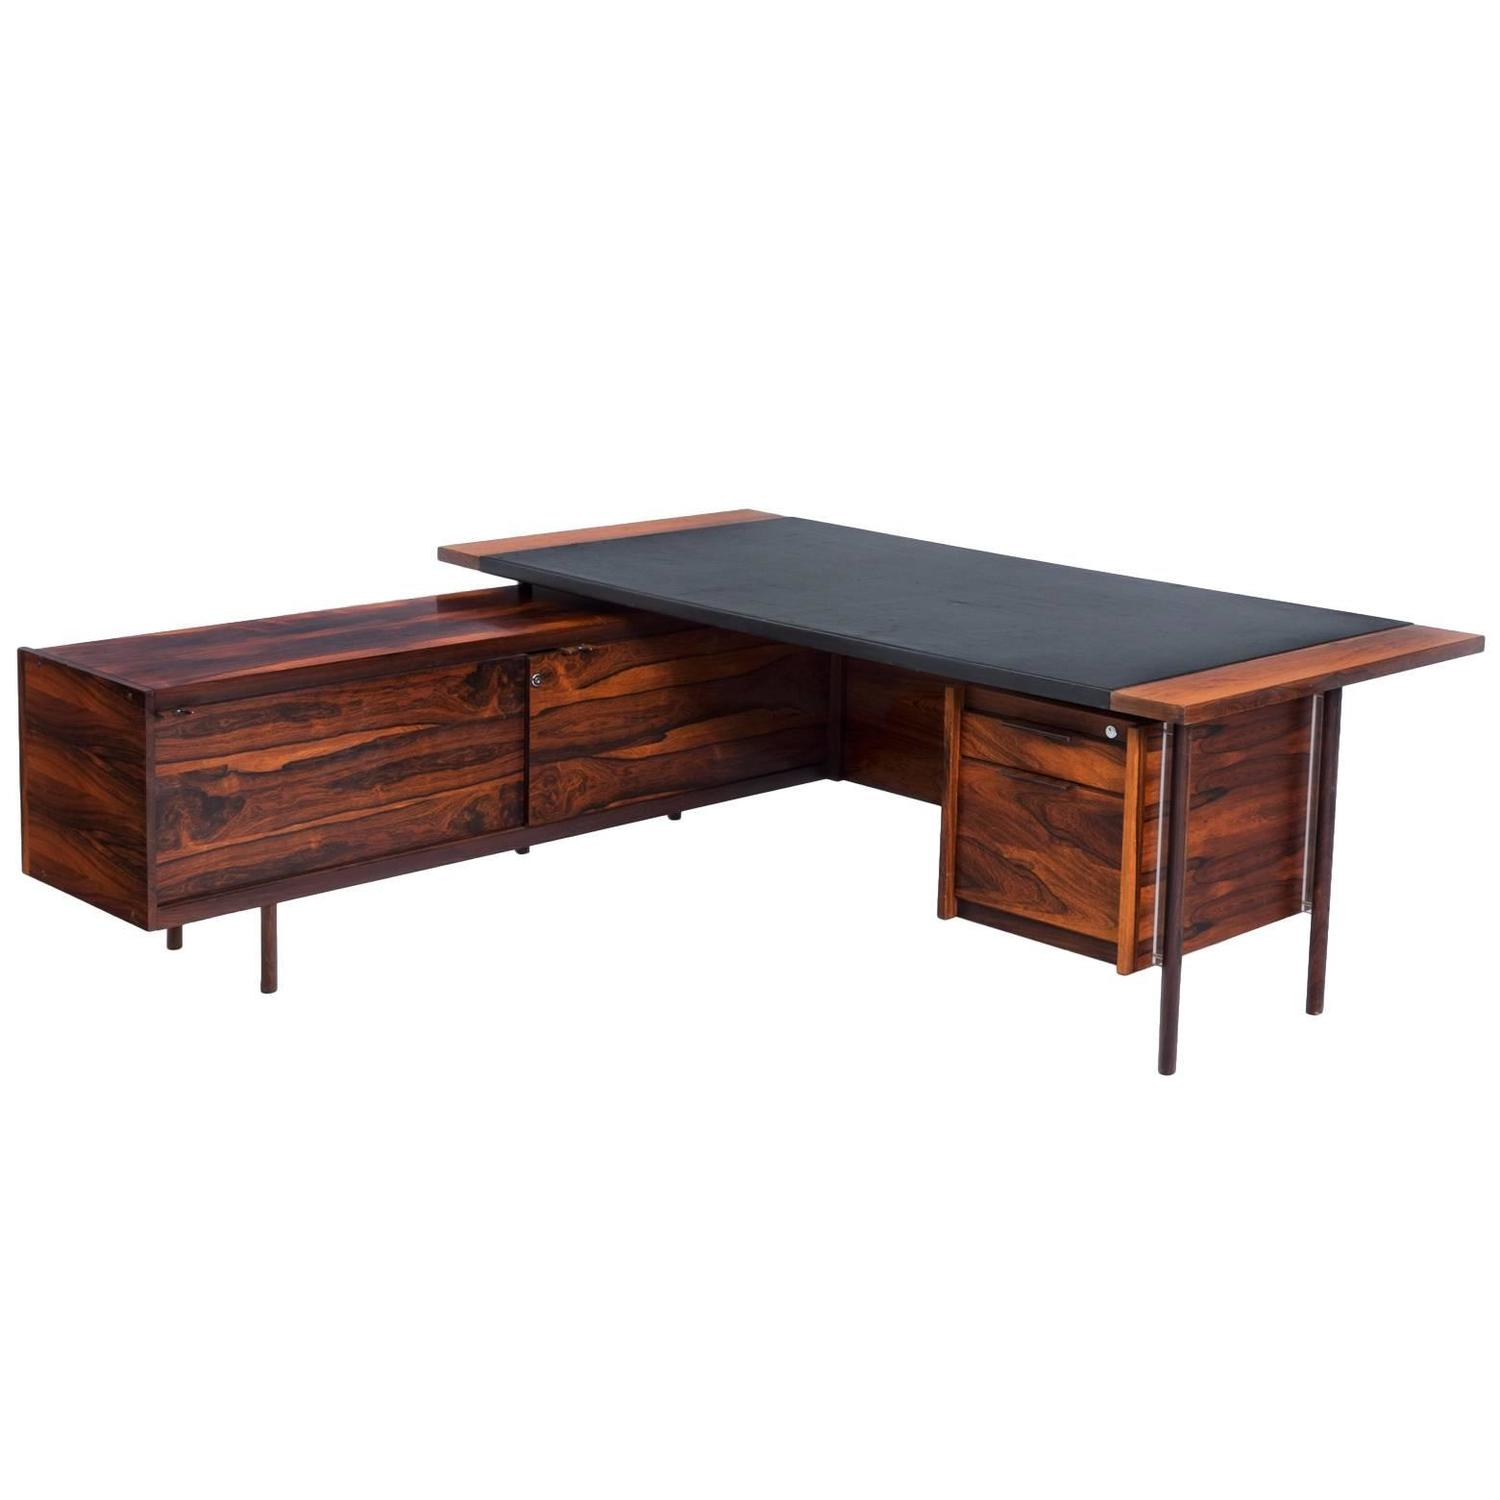 Sven Ivar Dysthe Corner Executive Desk in Rosewood For Sale at 1stdibs